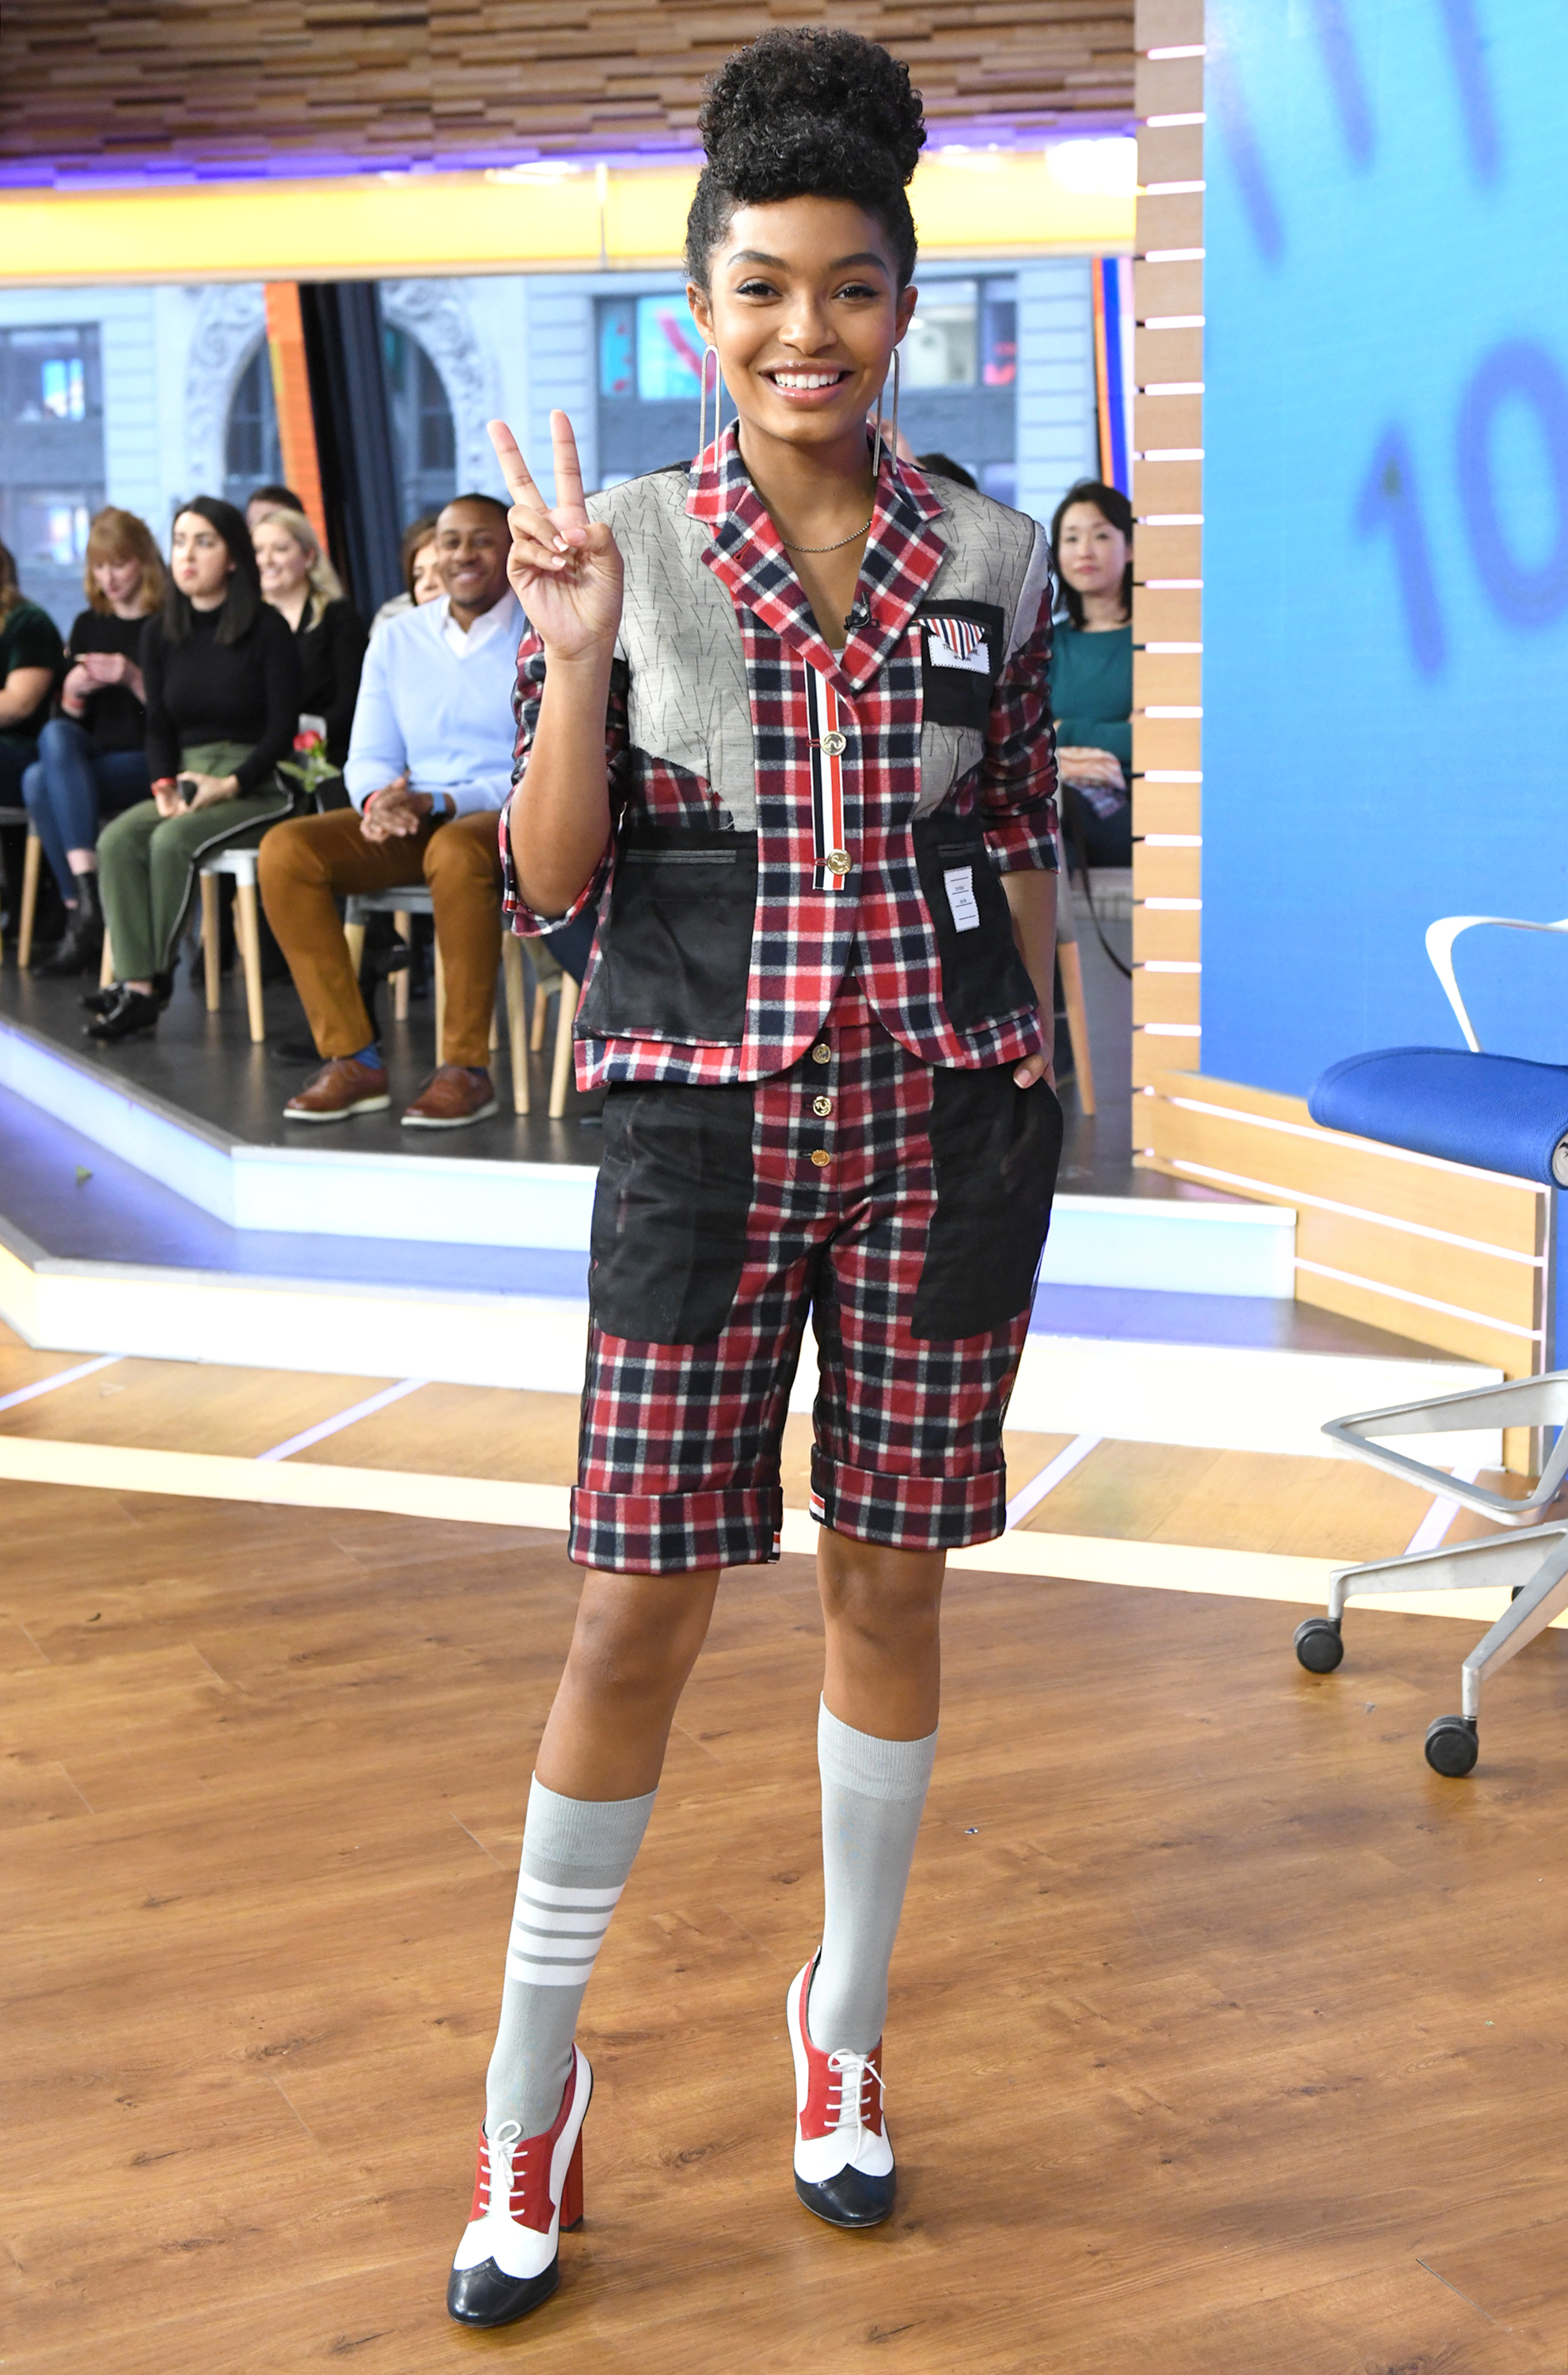 In Case You Missed It: Yara Shahidi On Good Morning America